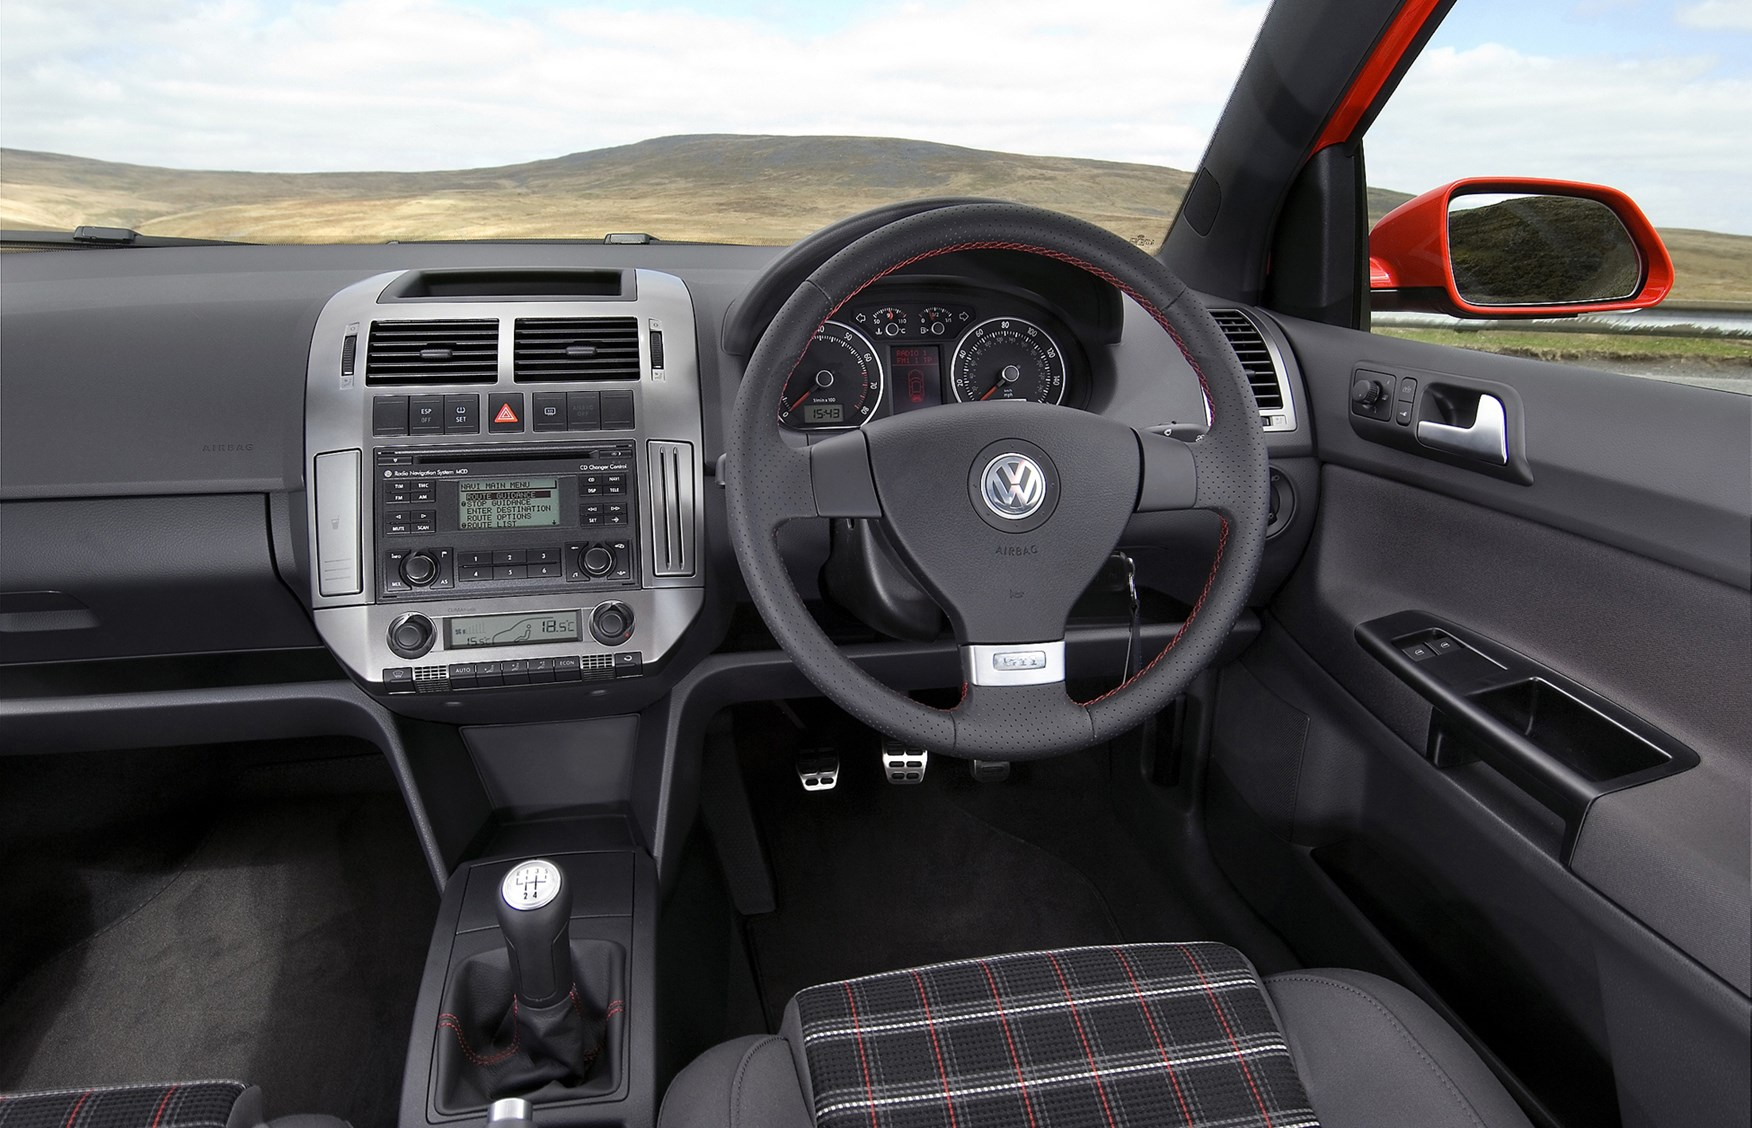 View All Images Of The Volkswagen Polo Gti 06 09